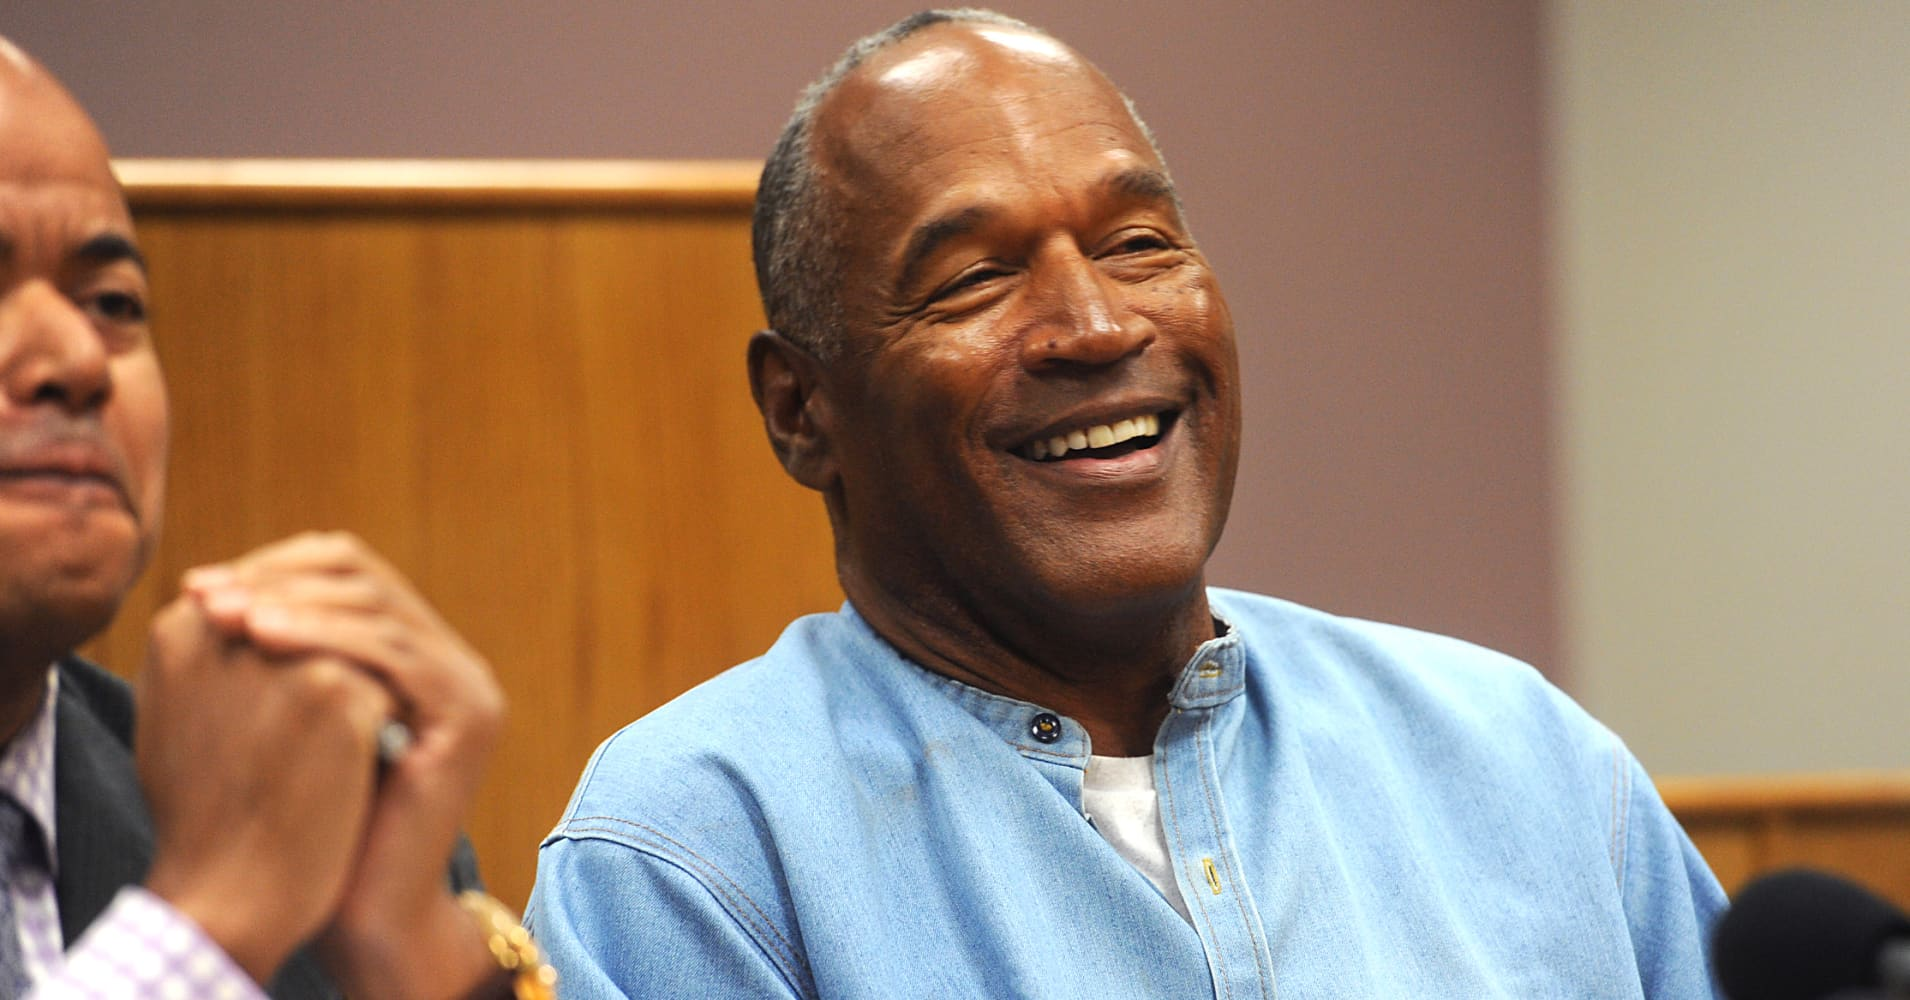 O.J. Simpson attends his parole hearing at Lovelock Correctional Center July 20, 2017 in Lovelock, Nevada.